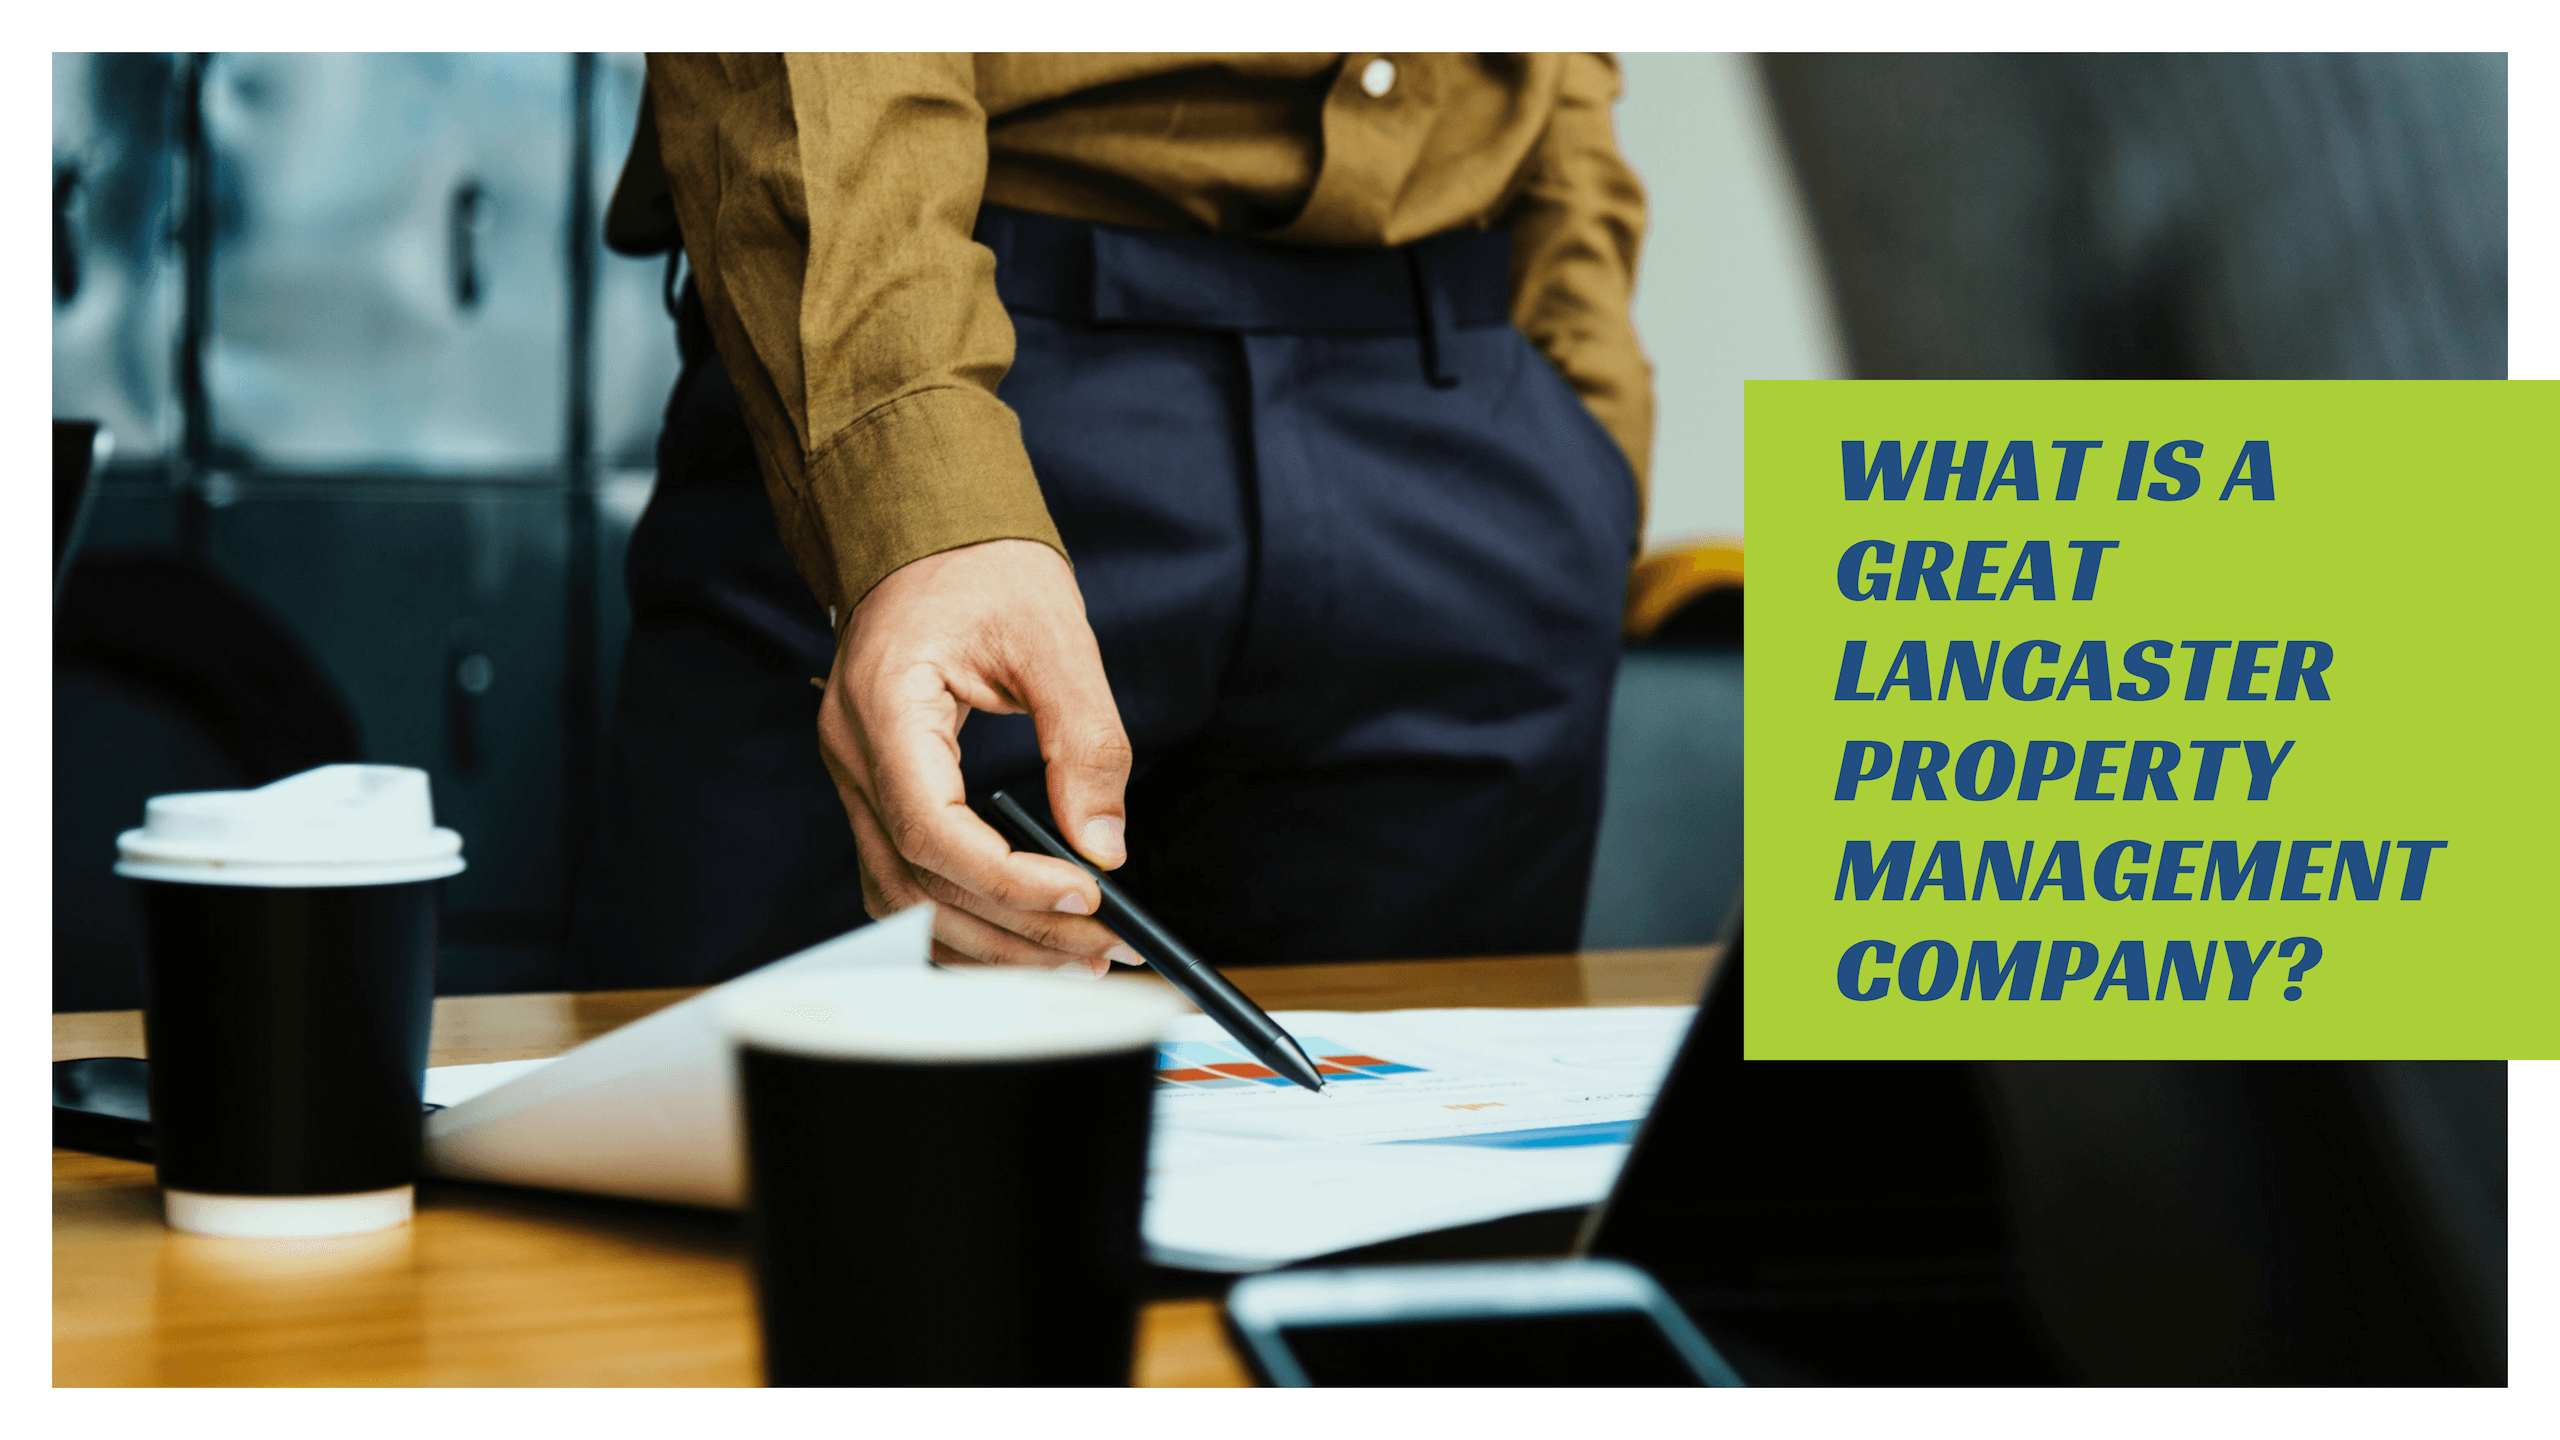 What is a Great Lancaster Property Management Company?